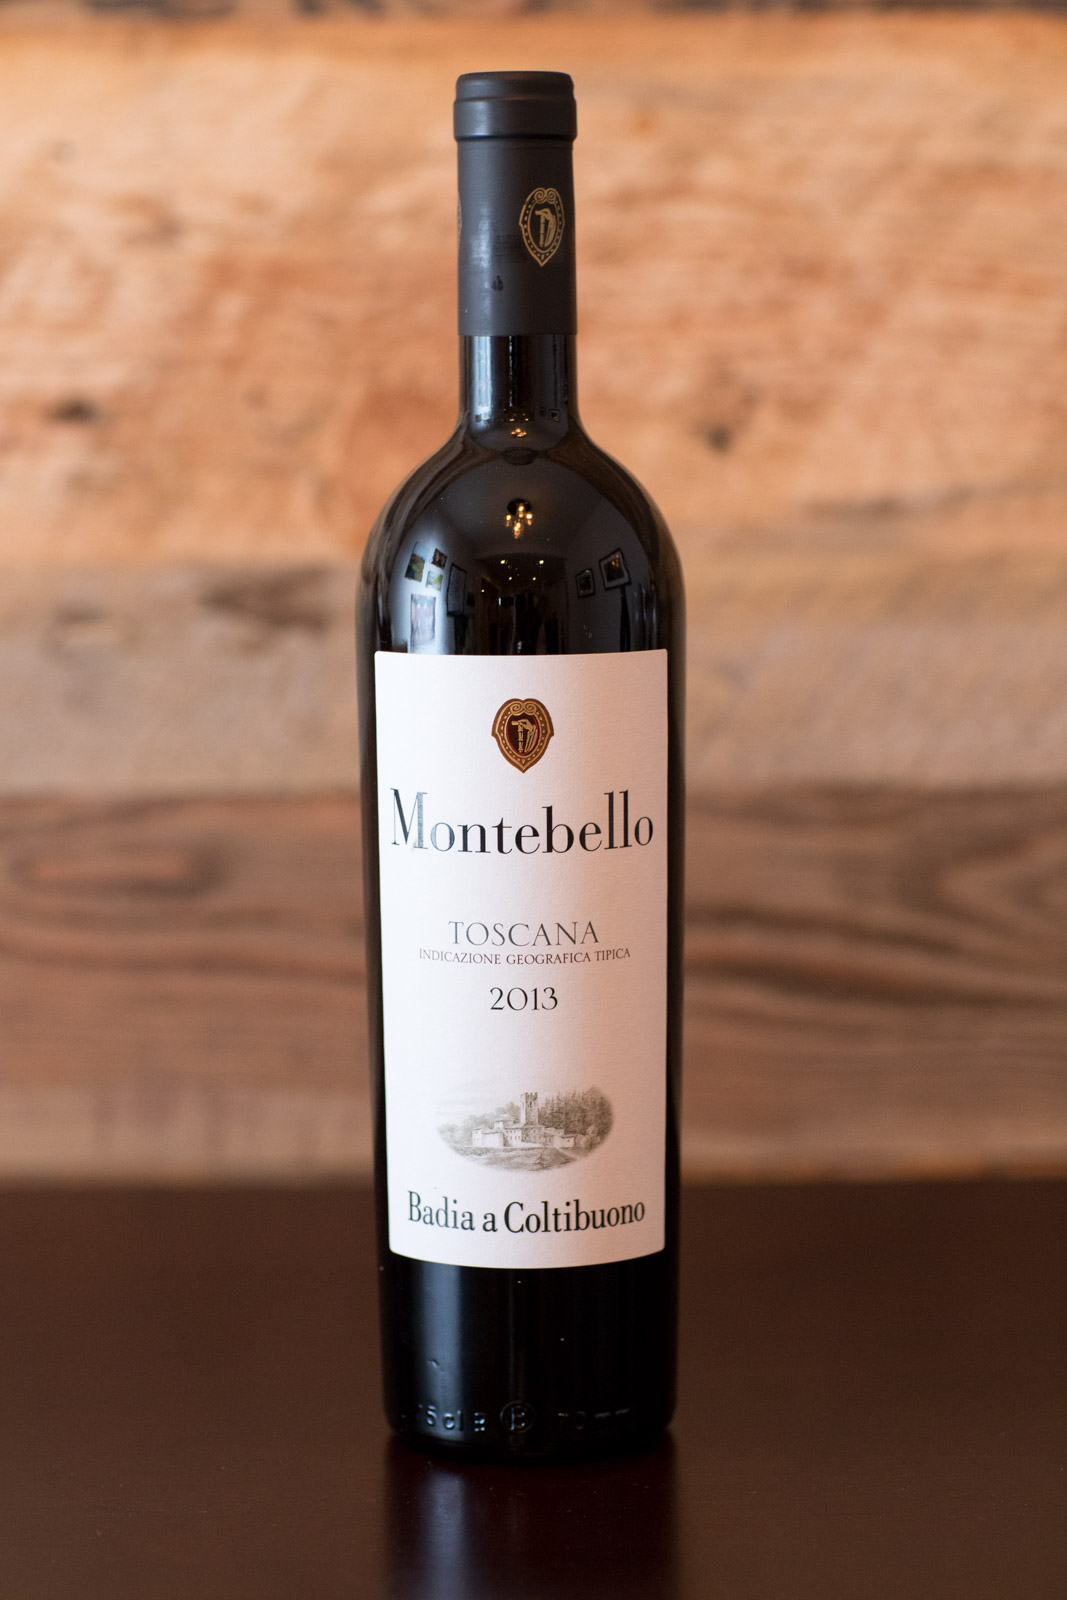 Badia a Coltibuono's Montebello is an atypical Toscana IGT in that it blends many of the region's forgotten indigenous red varieties into a single, compelling wine. ©Kevin Day/Opening a Bottle